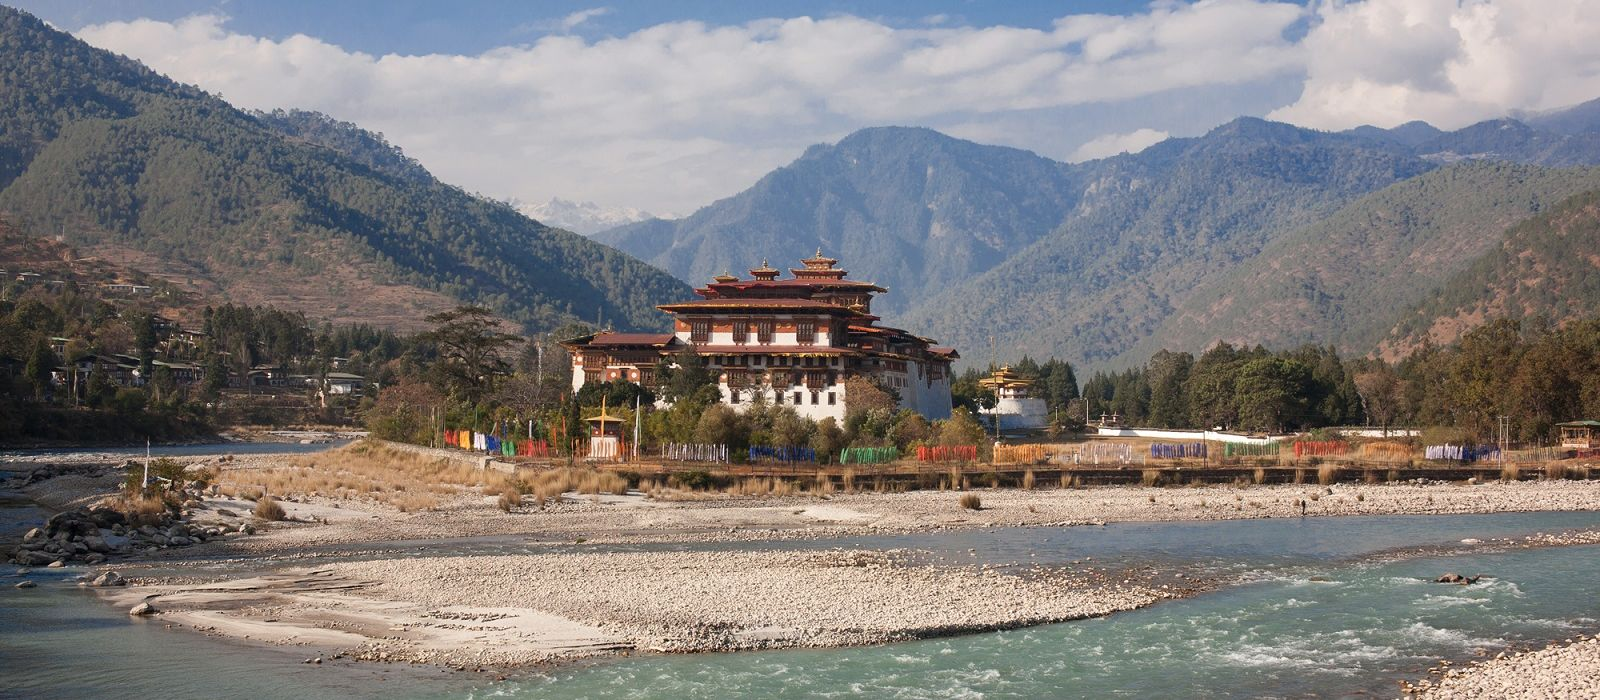 Highlights Of Nepal And Bhutan Tour Trip 1